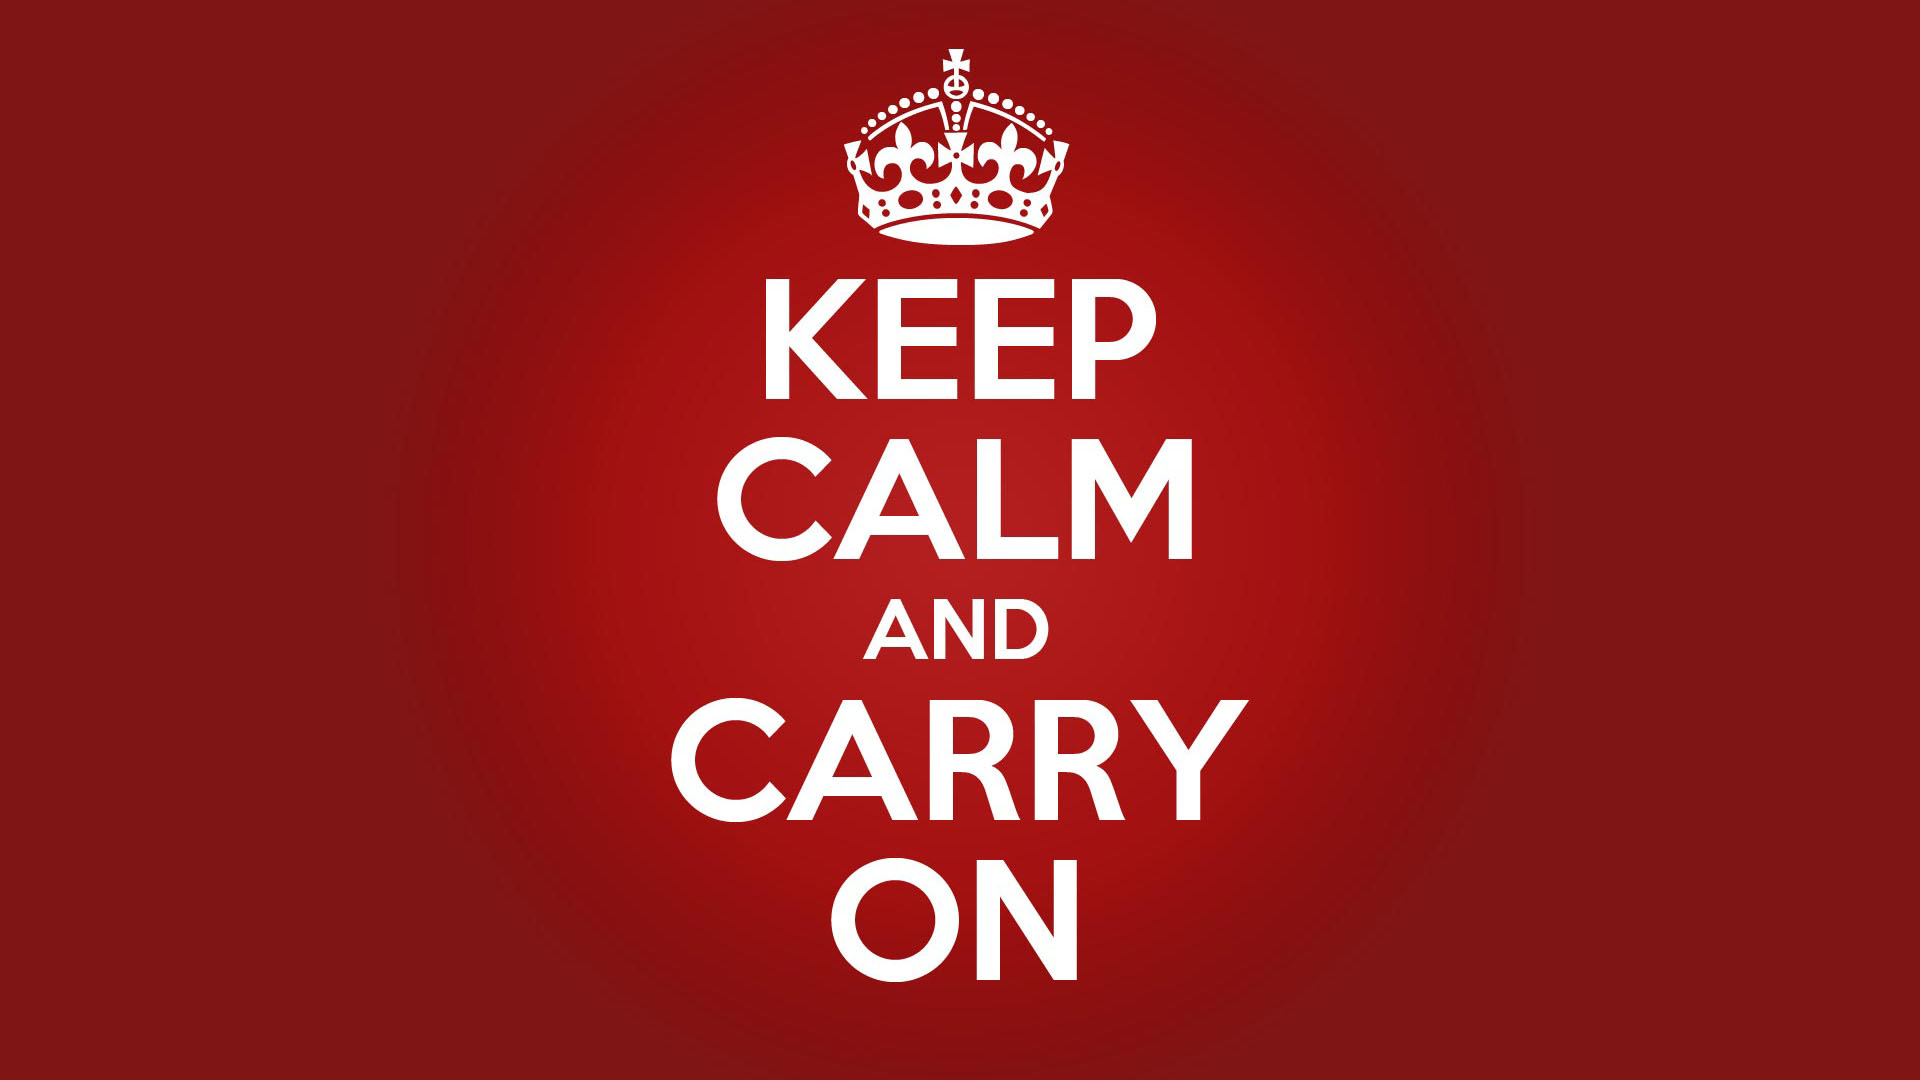 Keep Calm and Carry On | Know Your Meme